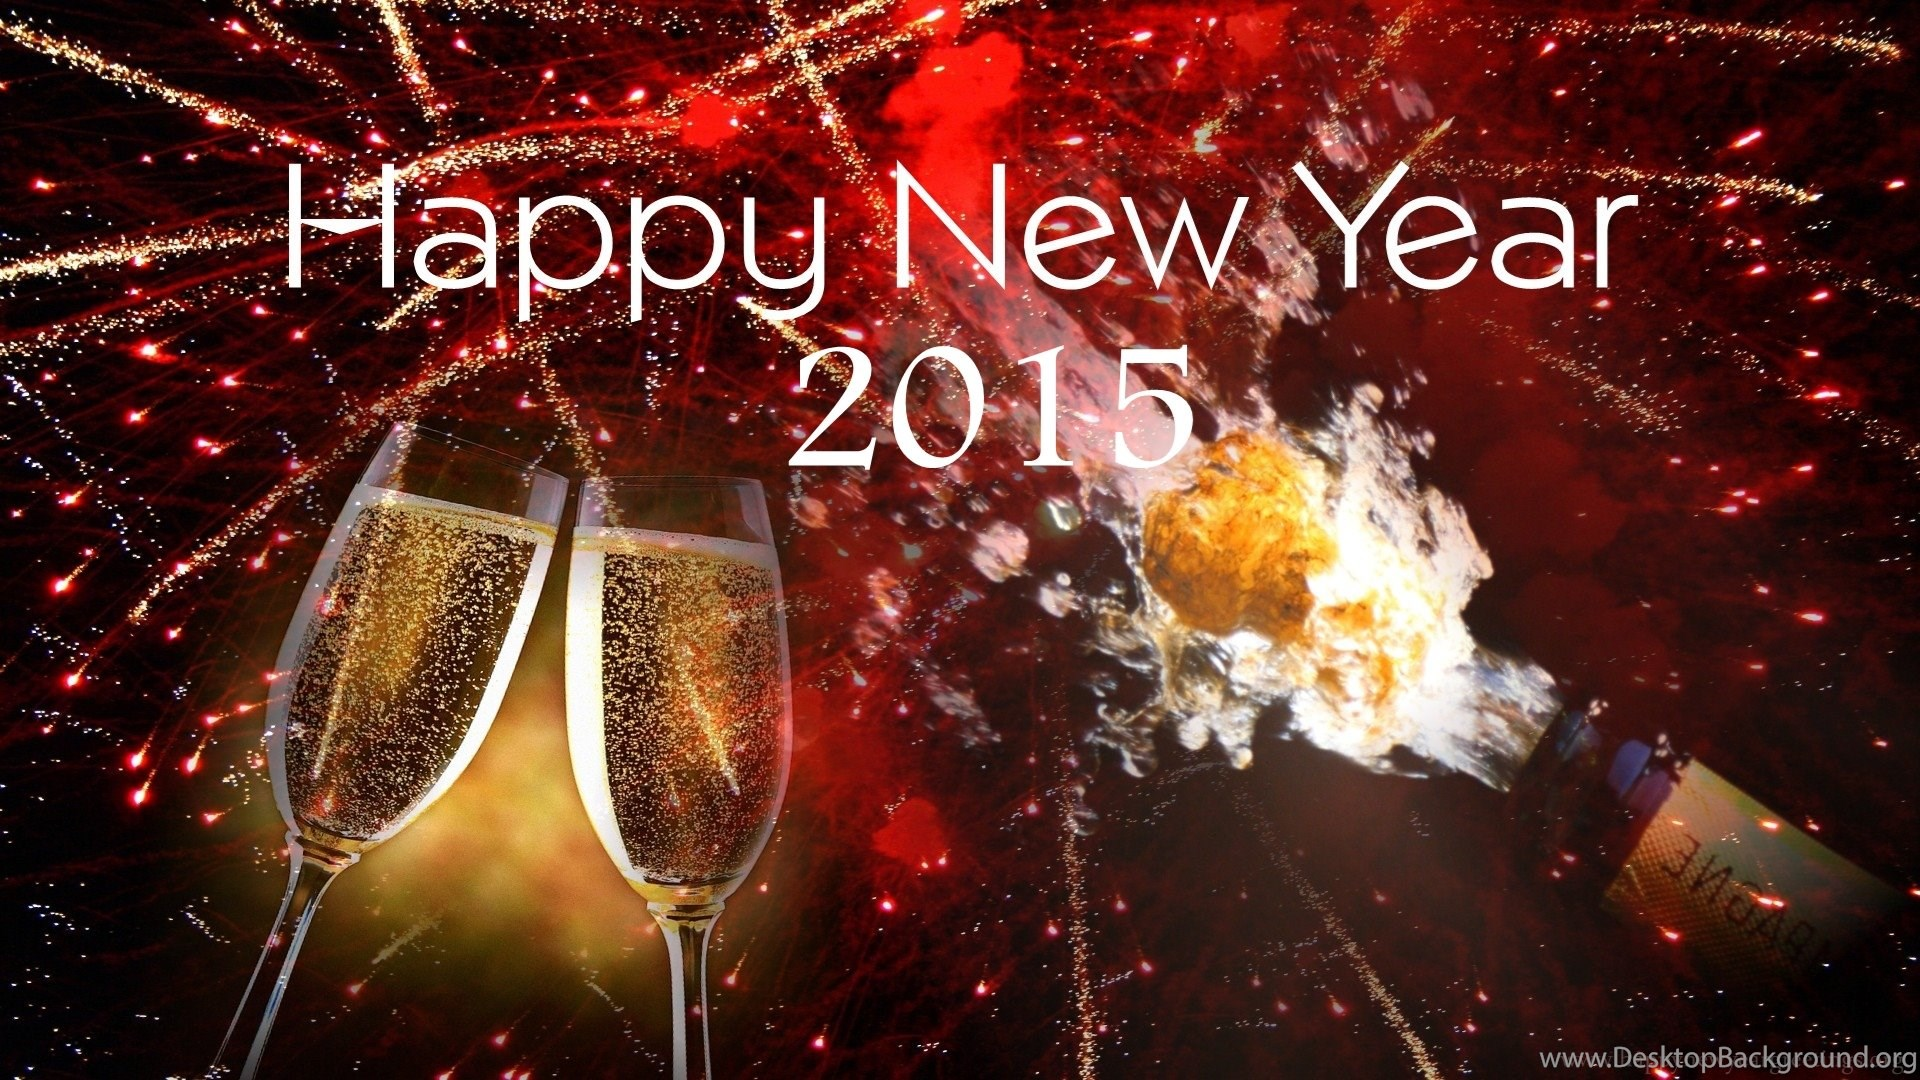 Happy new year 2015 free hd wallpapers new year greetings desktop popular m4hsunfo